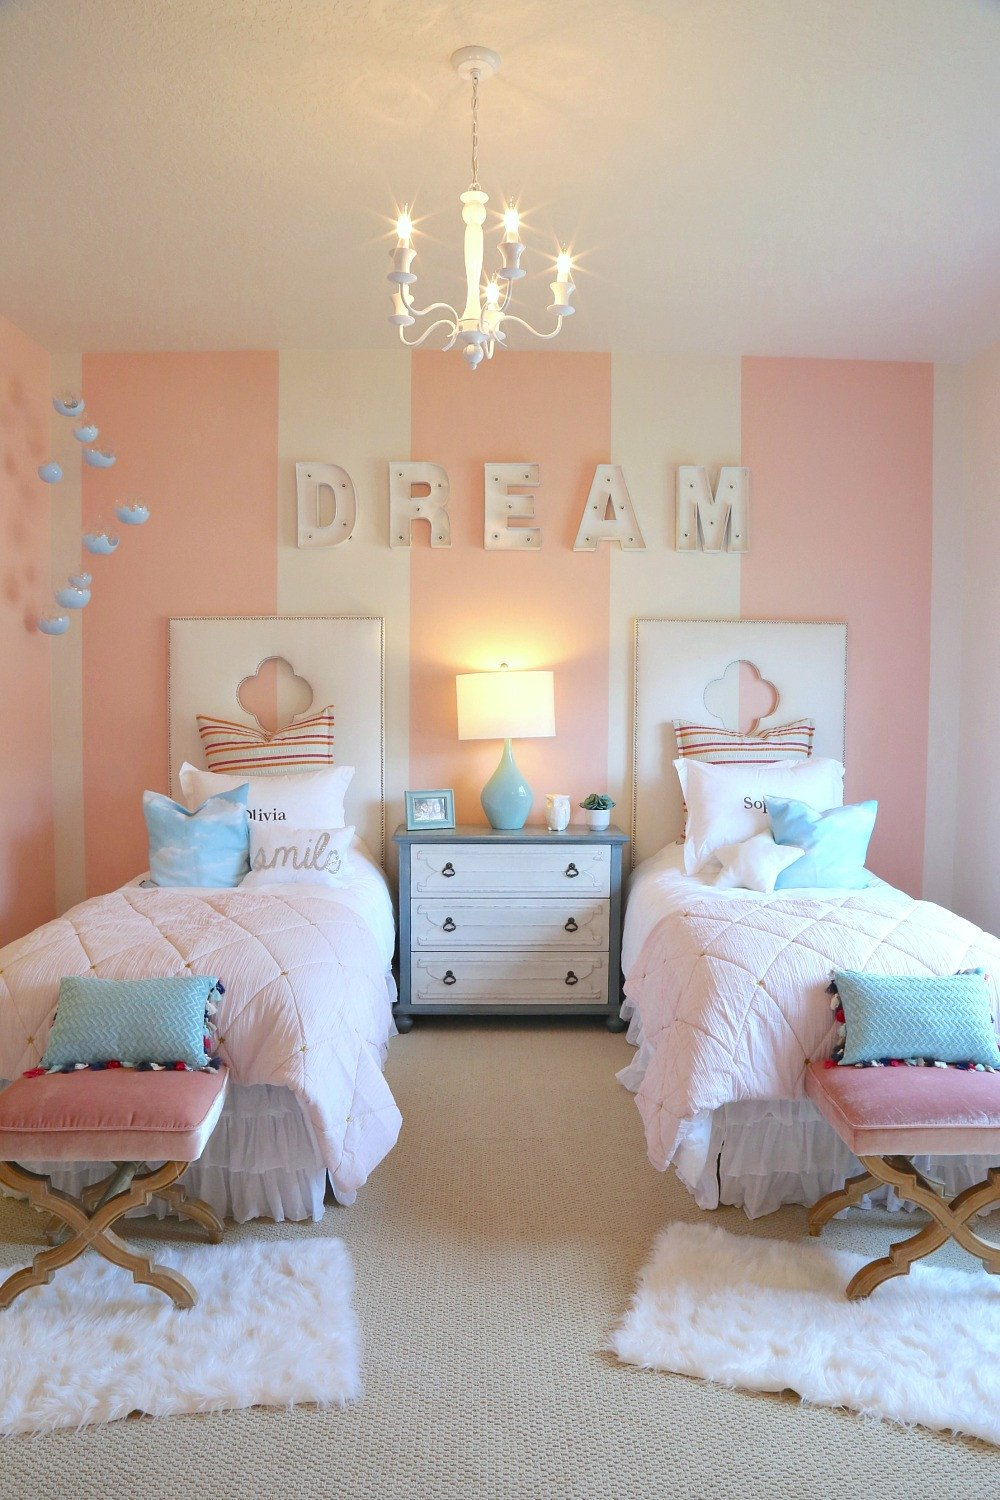 Room Decor Ideas for Girls New Creative Kids Bedroom Decorating Ideas